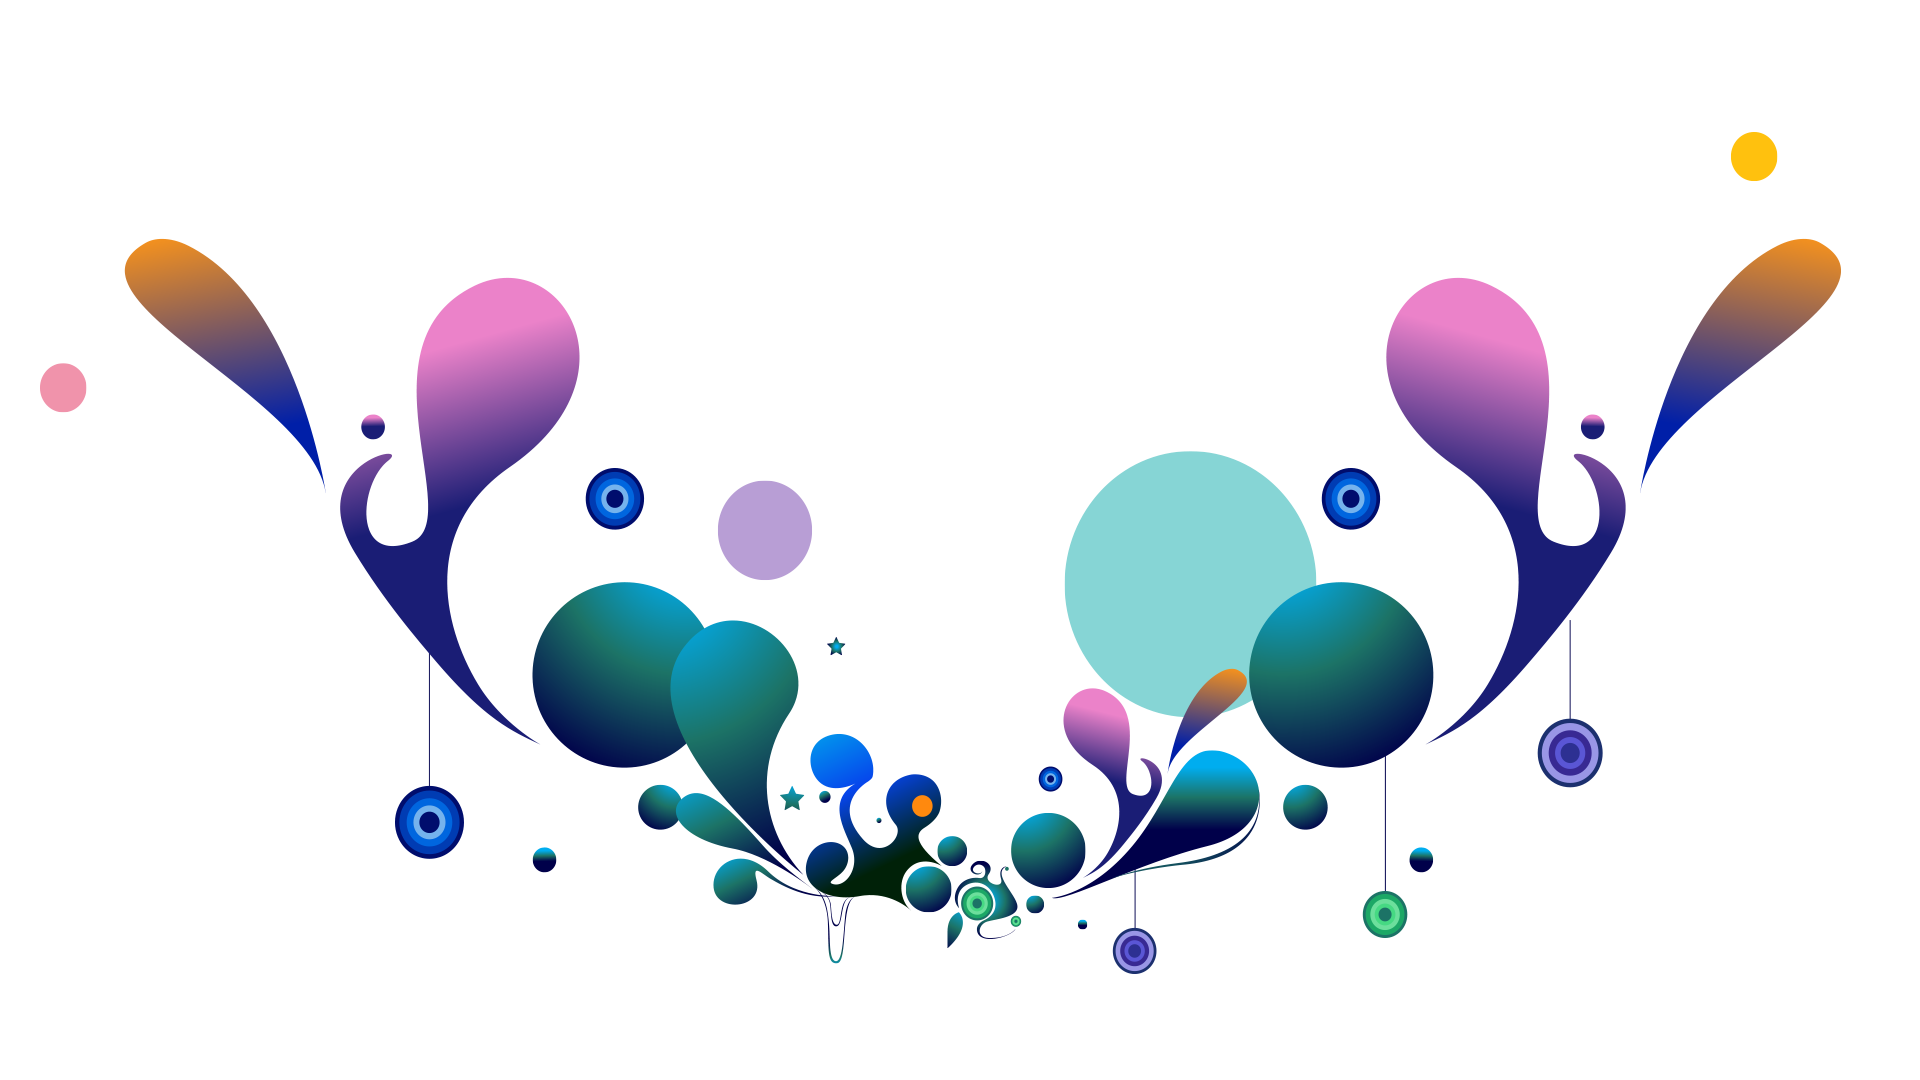 Flower Vector Design Png - Cl